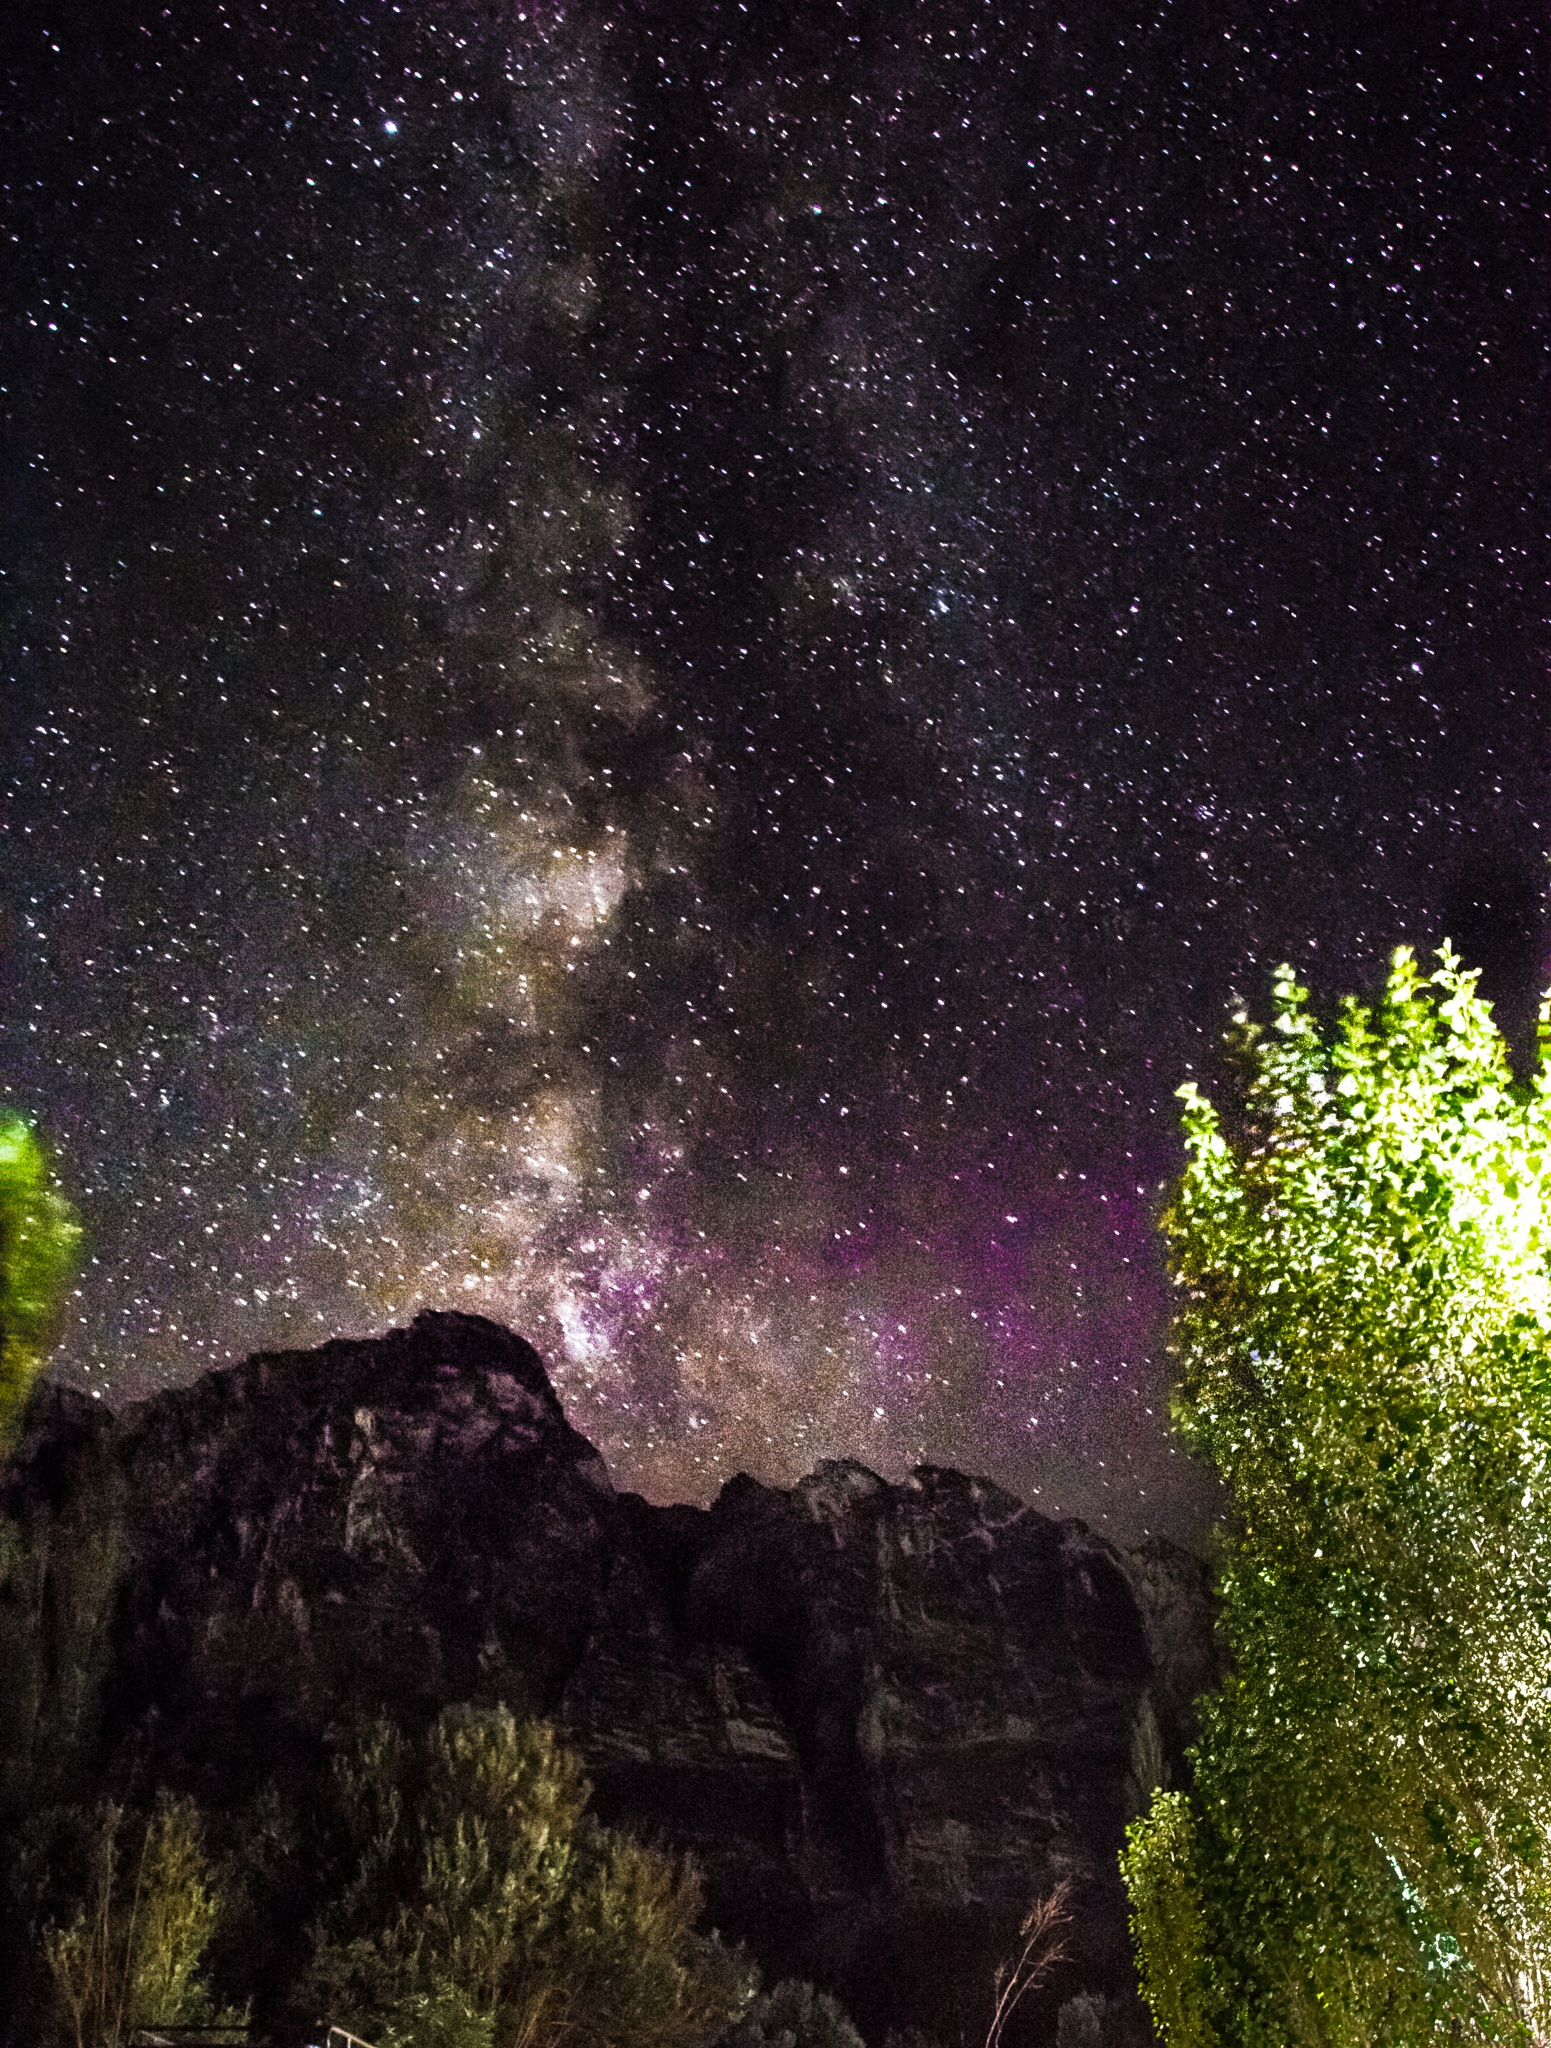 milky way by photography by a rookie